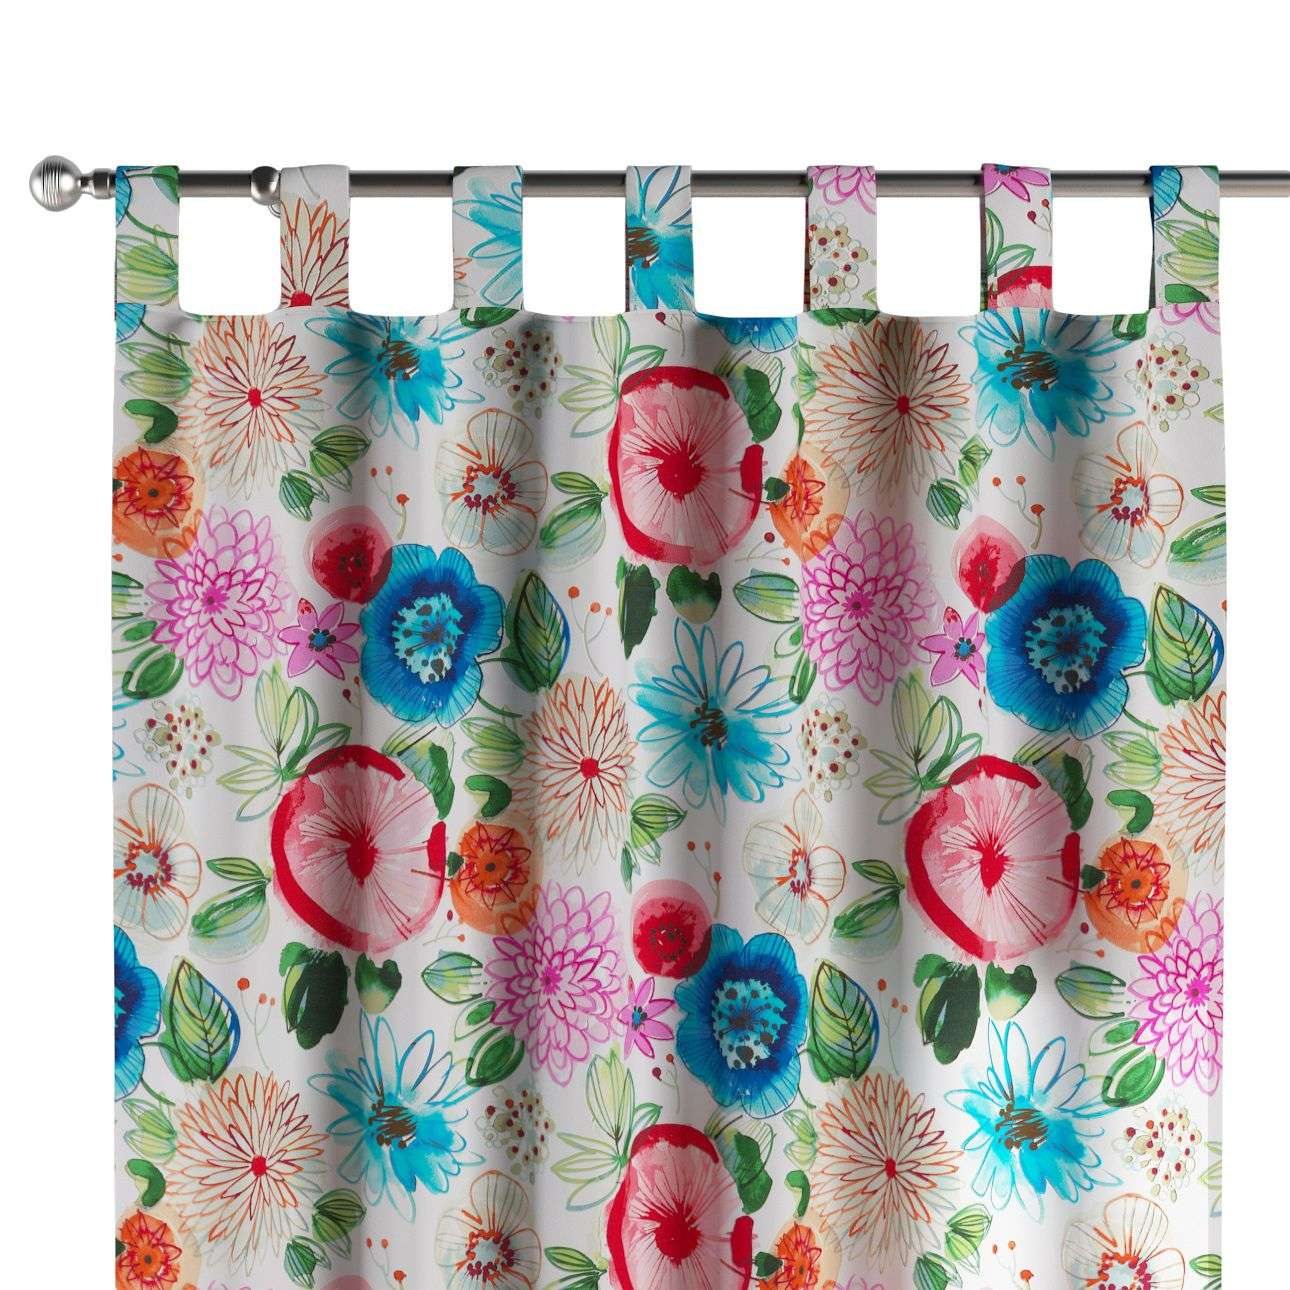 Tab top curtains 130 x 260 cm (51 x 102 inch) in collection New Art, fabric: 140-24